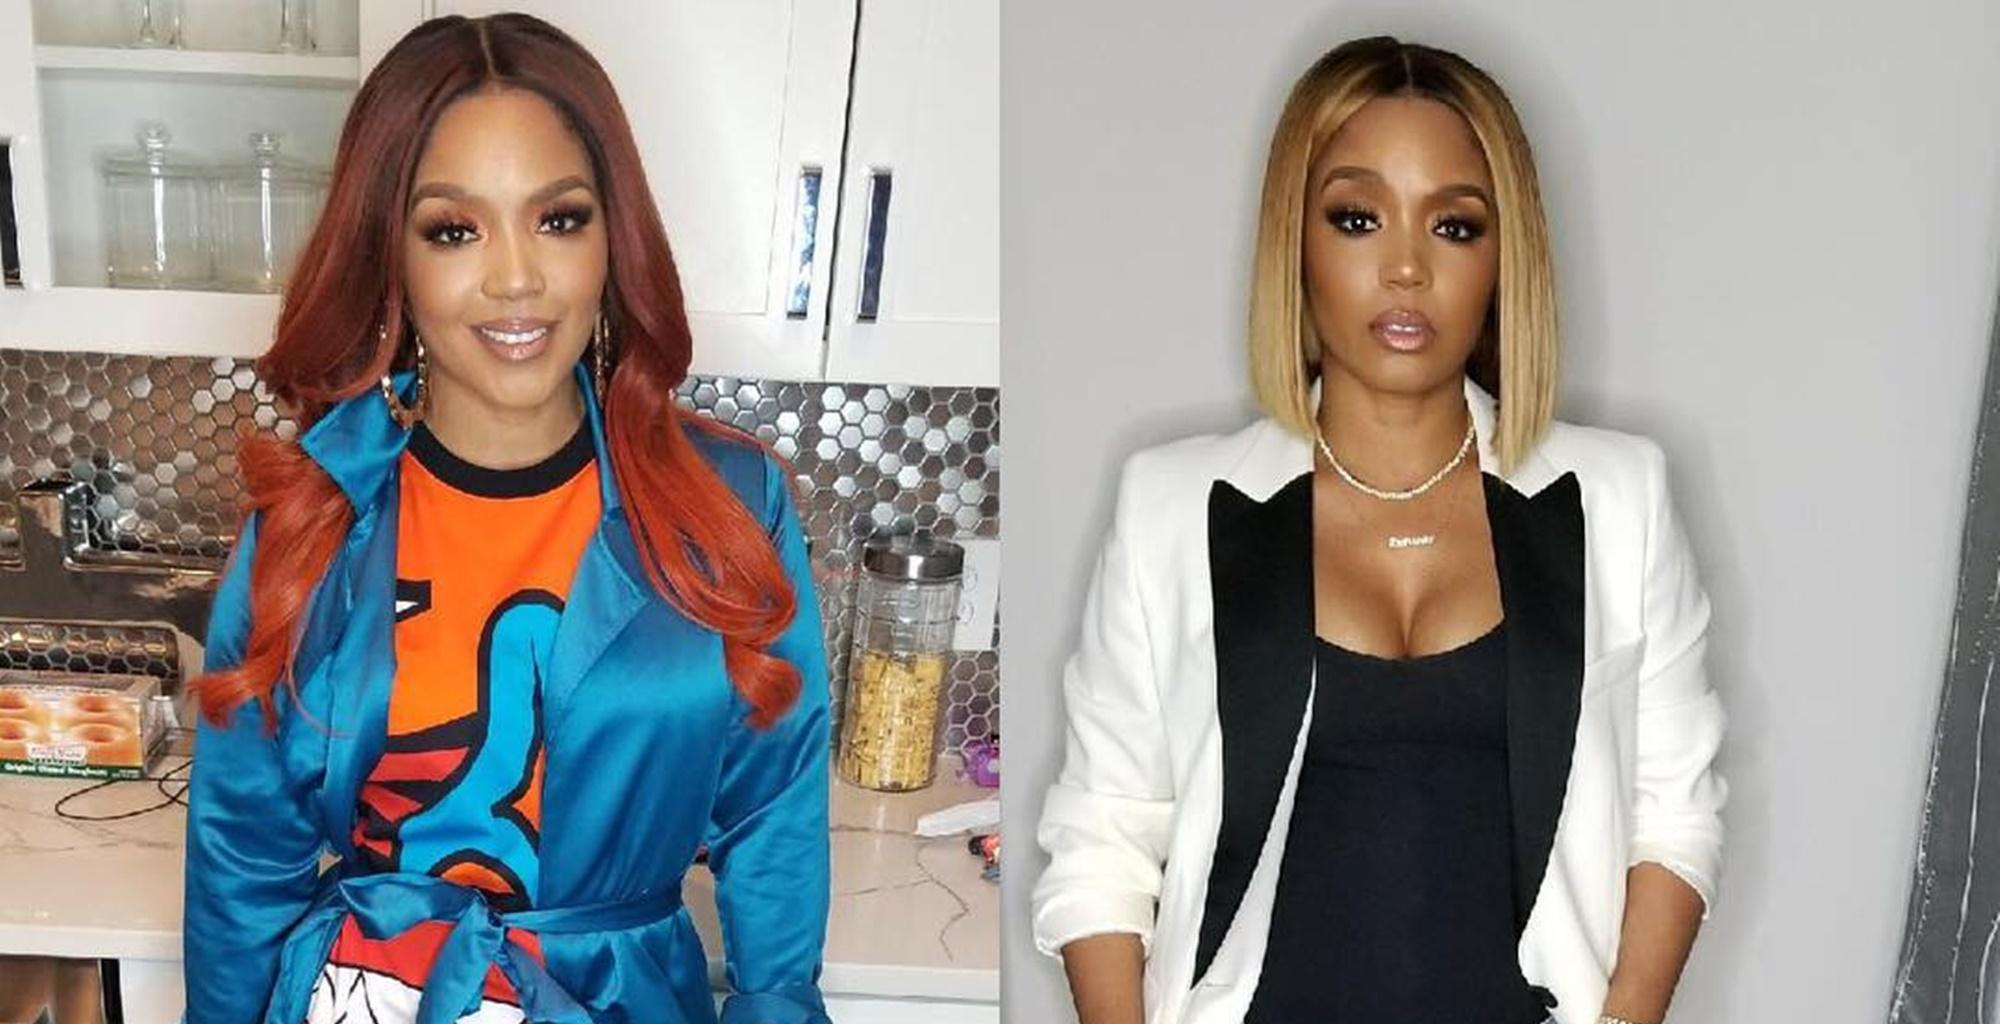 Rasheeda Frost's Latest Look Has Fans Praising Her - See The Long Locks That She's Flaunting In The Latest Video